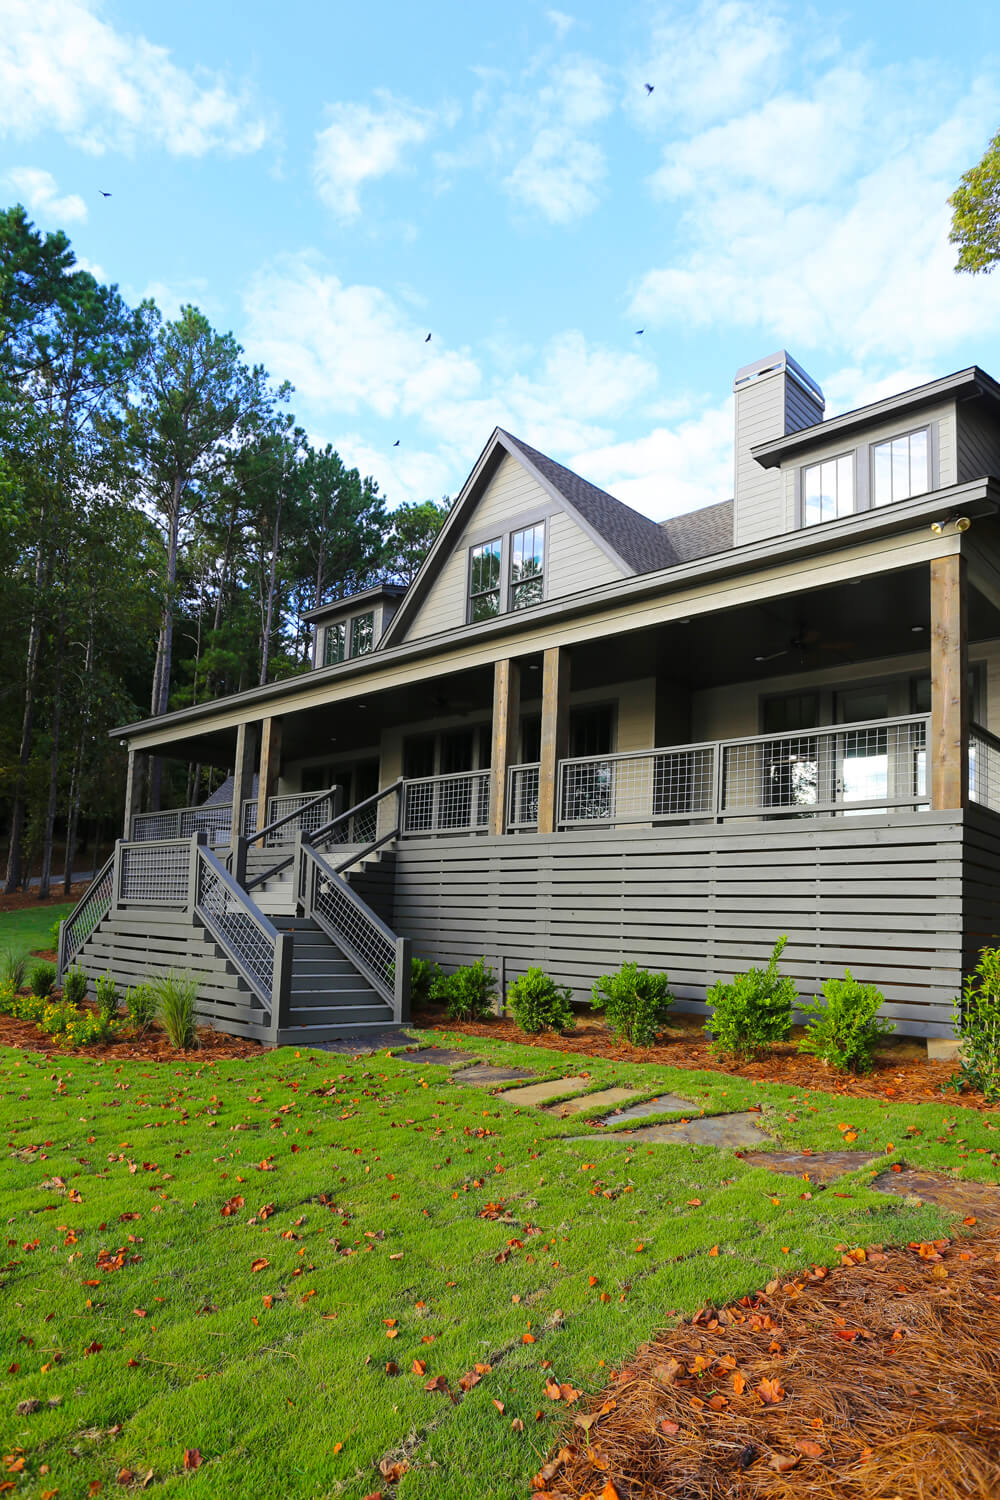 Lake House - Front Perspective - Designed by Foshee Architecture